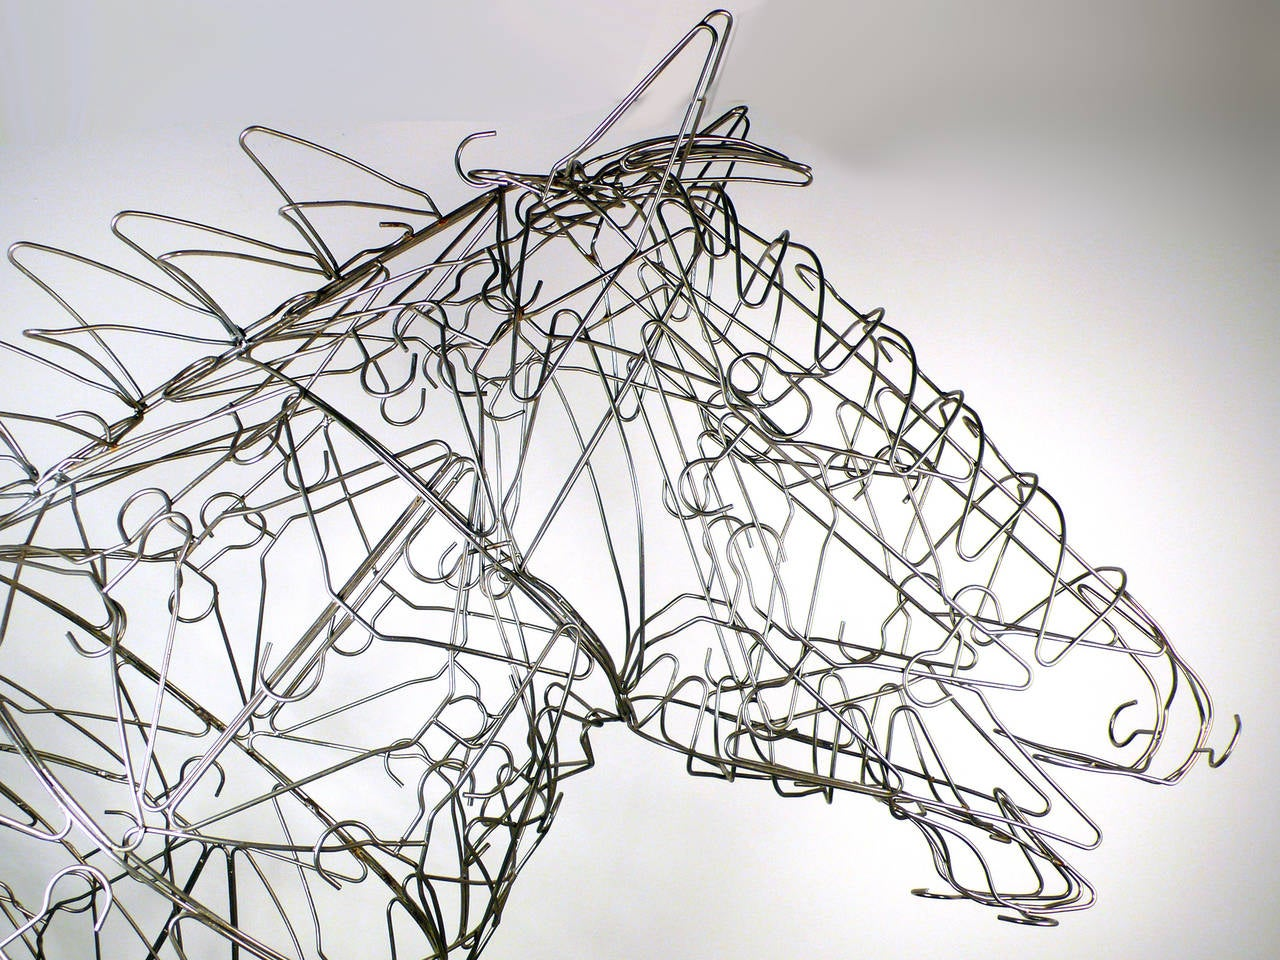 Contemporary Massive Horse Sculpture Crafted From 1000 Chrome Coat Hangers for Barneys NY For Sale